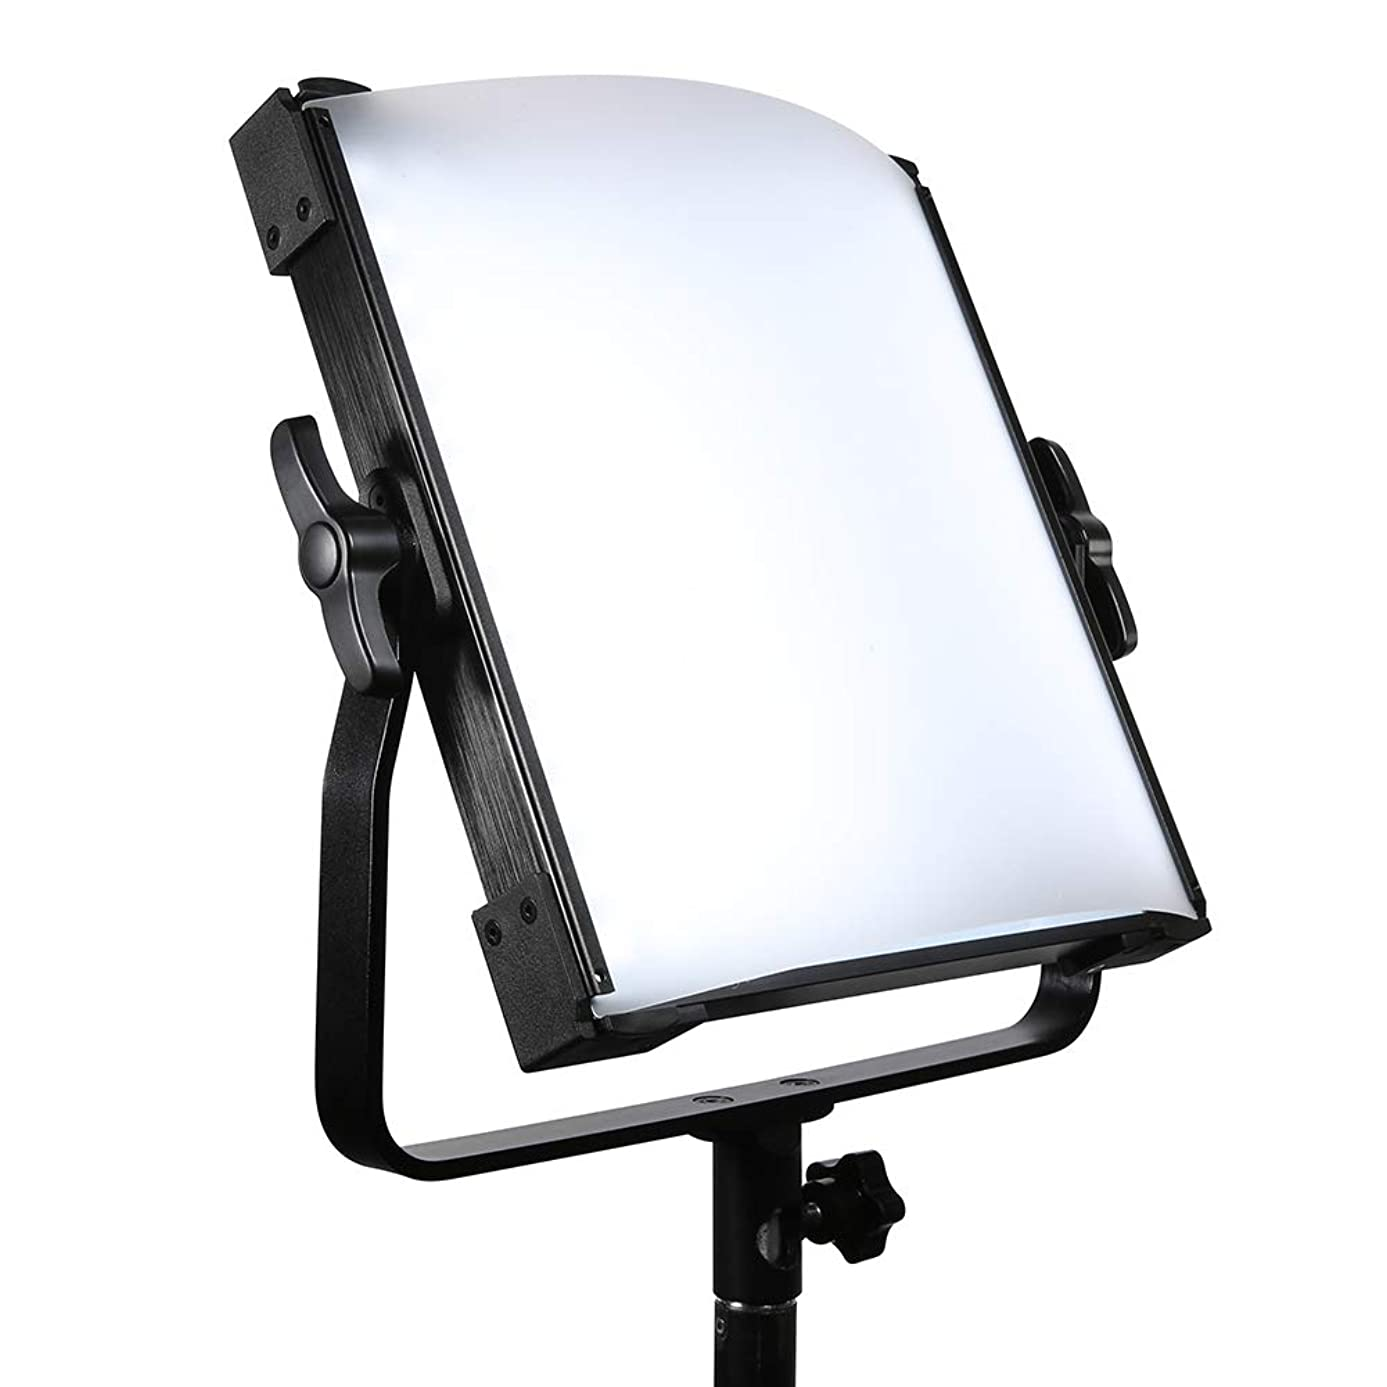 LED Video Light,Dimmable Bi-Color Panel Light 3000K-8000K for YouTube, Live Broadcast, Outdoor Video Shooting, interviews,Studio Photography Interview YouTube,80W,CRI96+